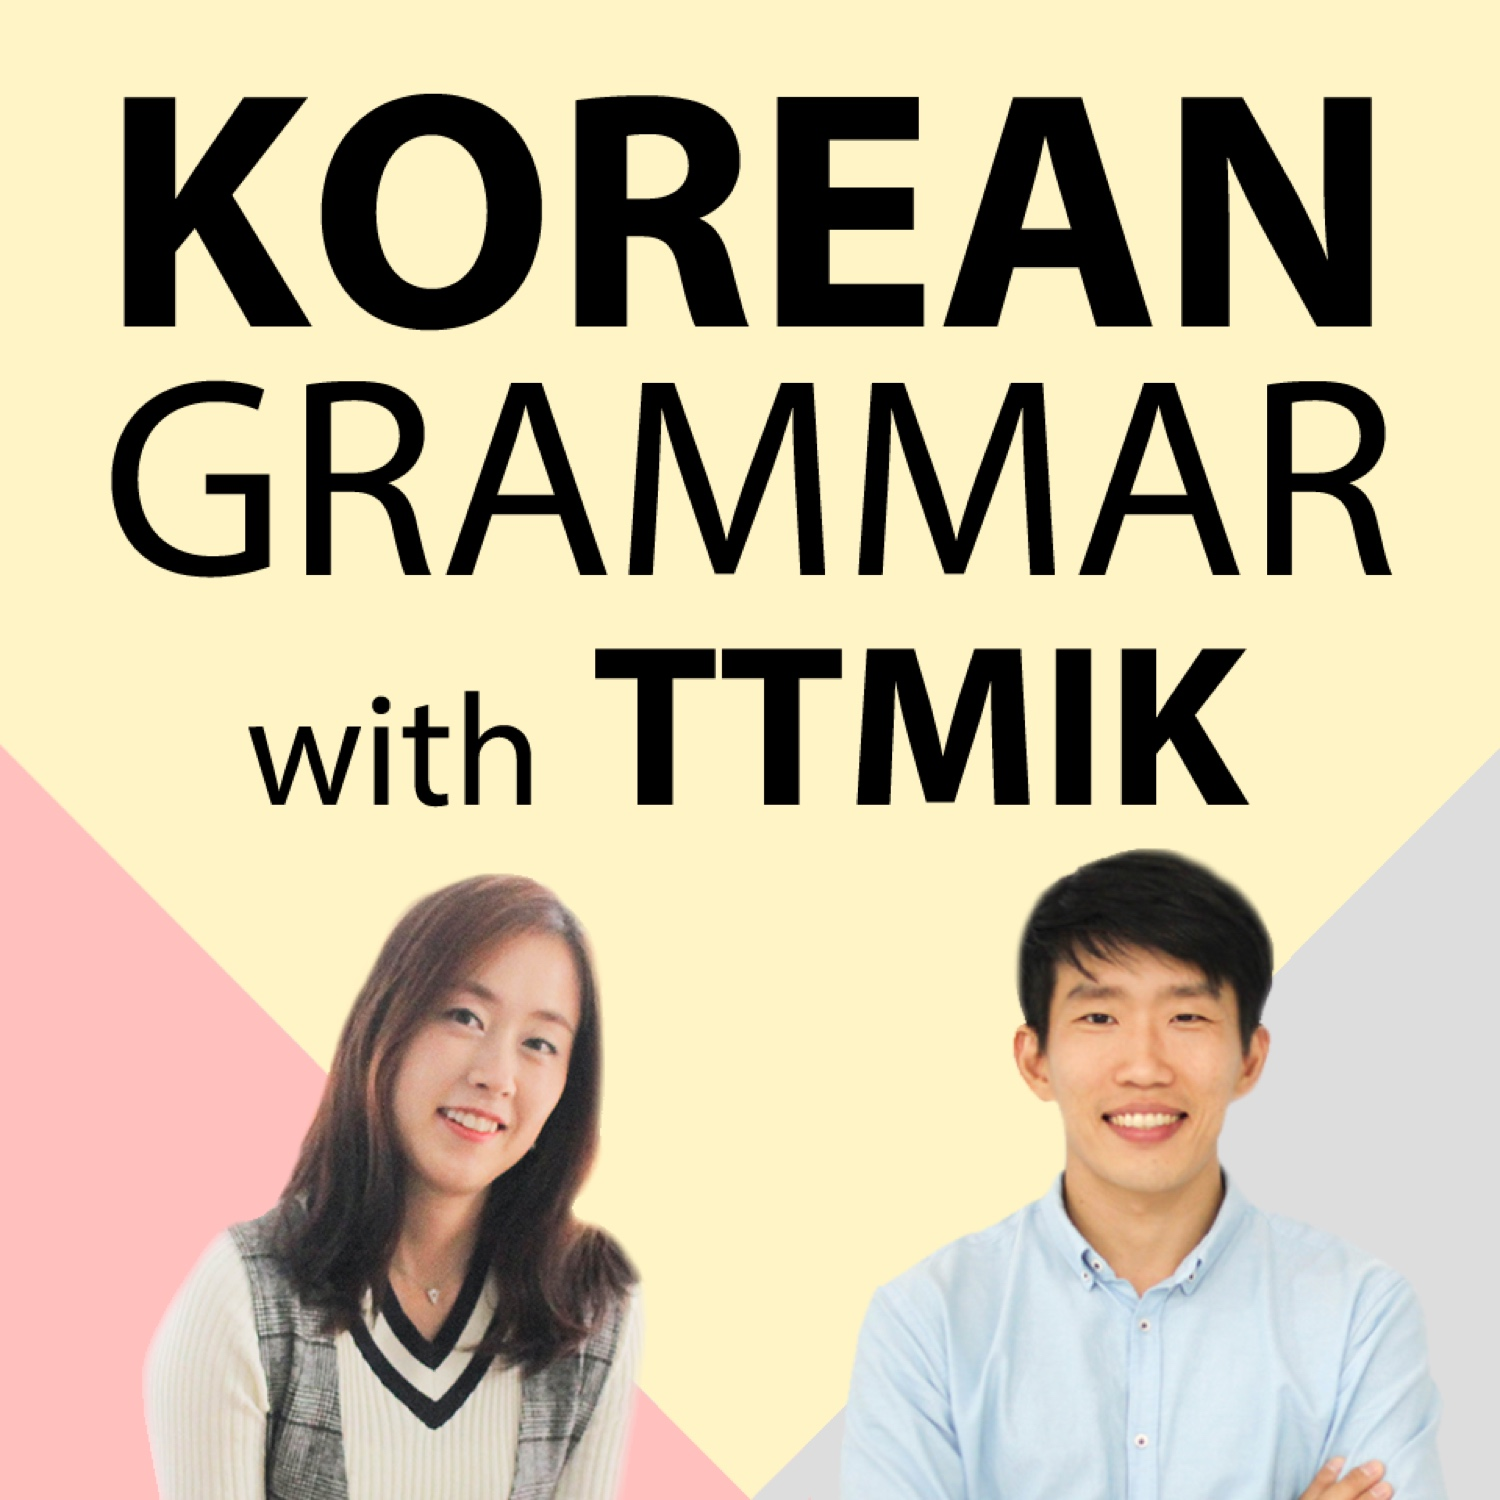 Talk To Me In Korean - Core Grammar Lessons Only show image